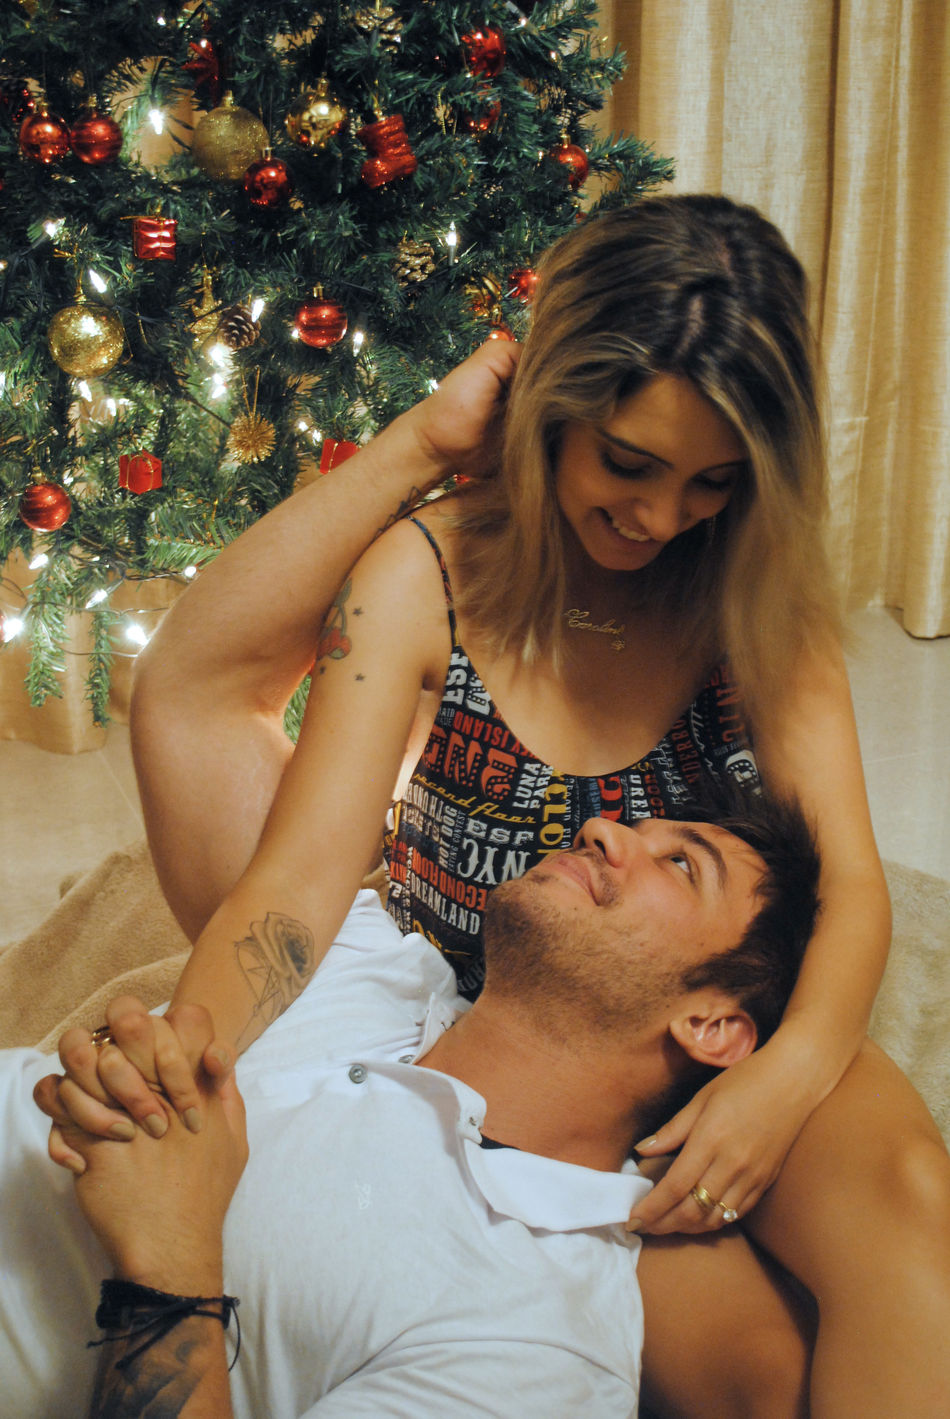 Christmas Christmas Tree Happiness Couple Lovephotography  Two People Christmas Around The World Christmas Spirit Christmastime Couple - Relationship People OpenEdit Christmas Boyfriendgirlfriend Couple In Love Couplesphotography Couples Shoot Celebration Young Adult Smiling Portrait Couplephotography Love Is In The Air Love Photography